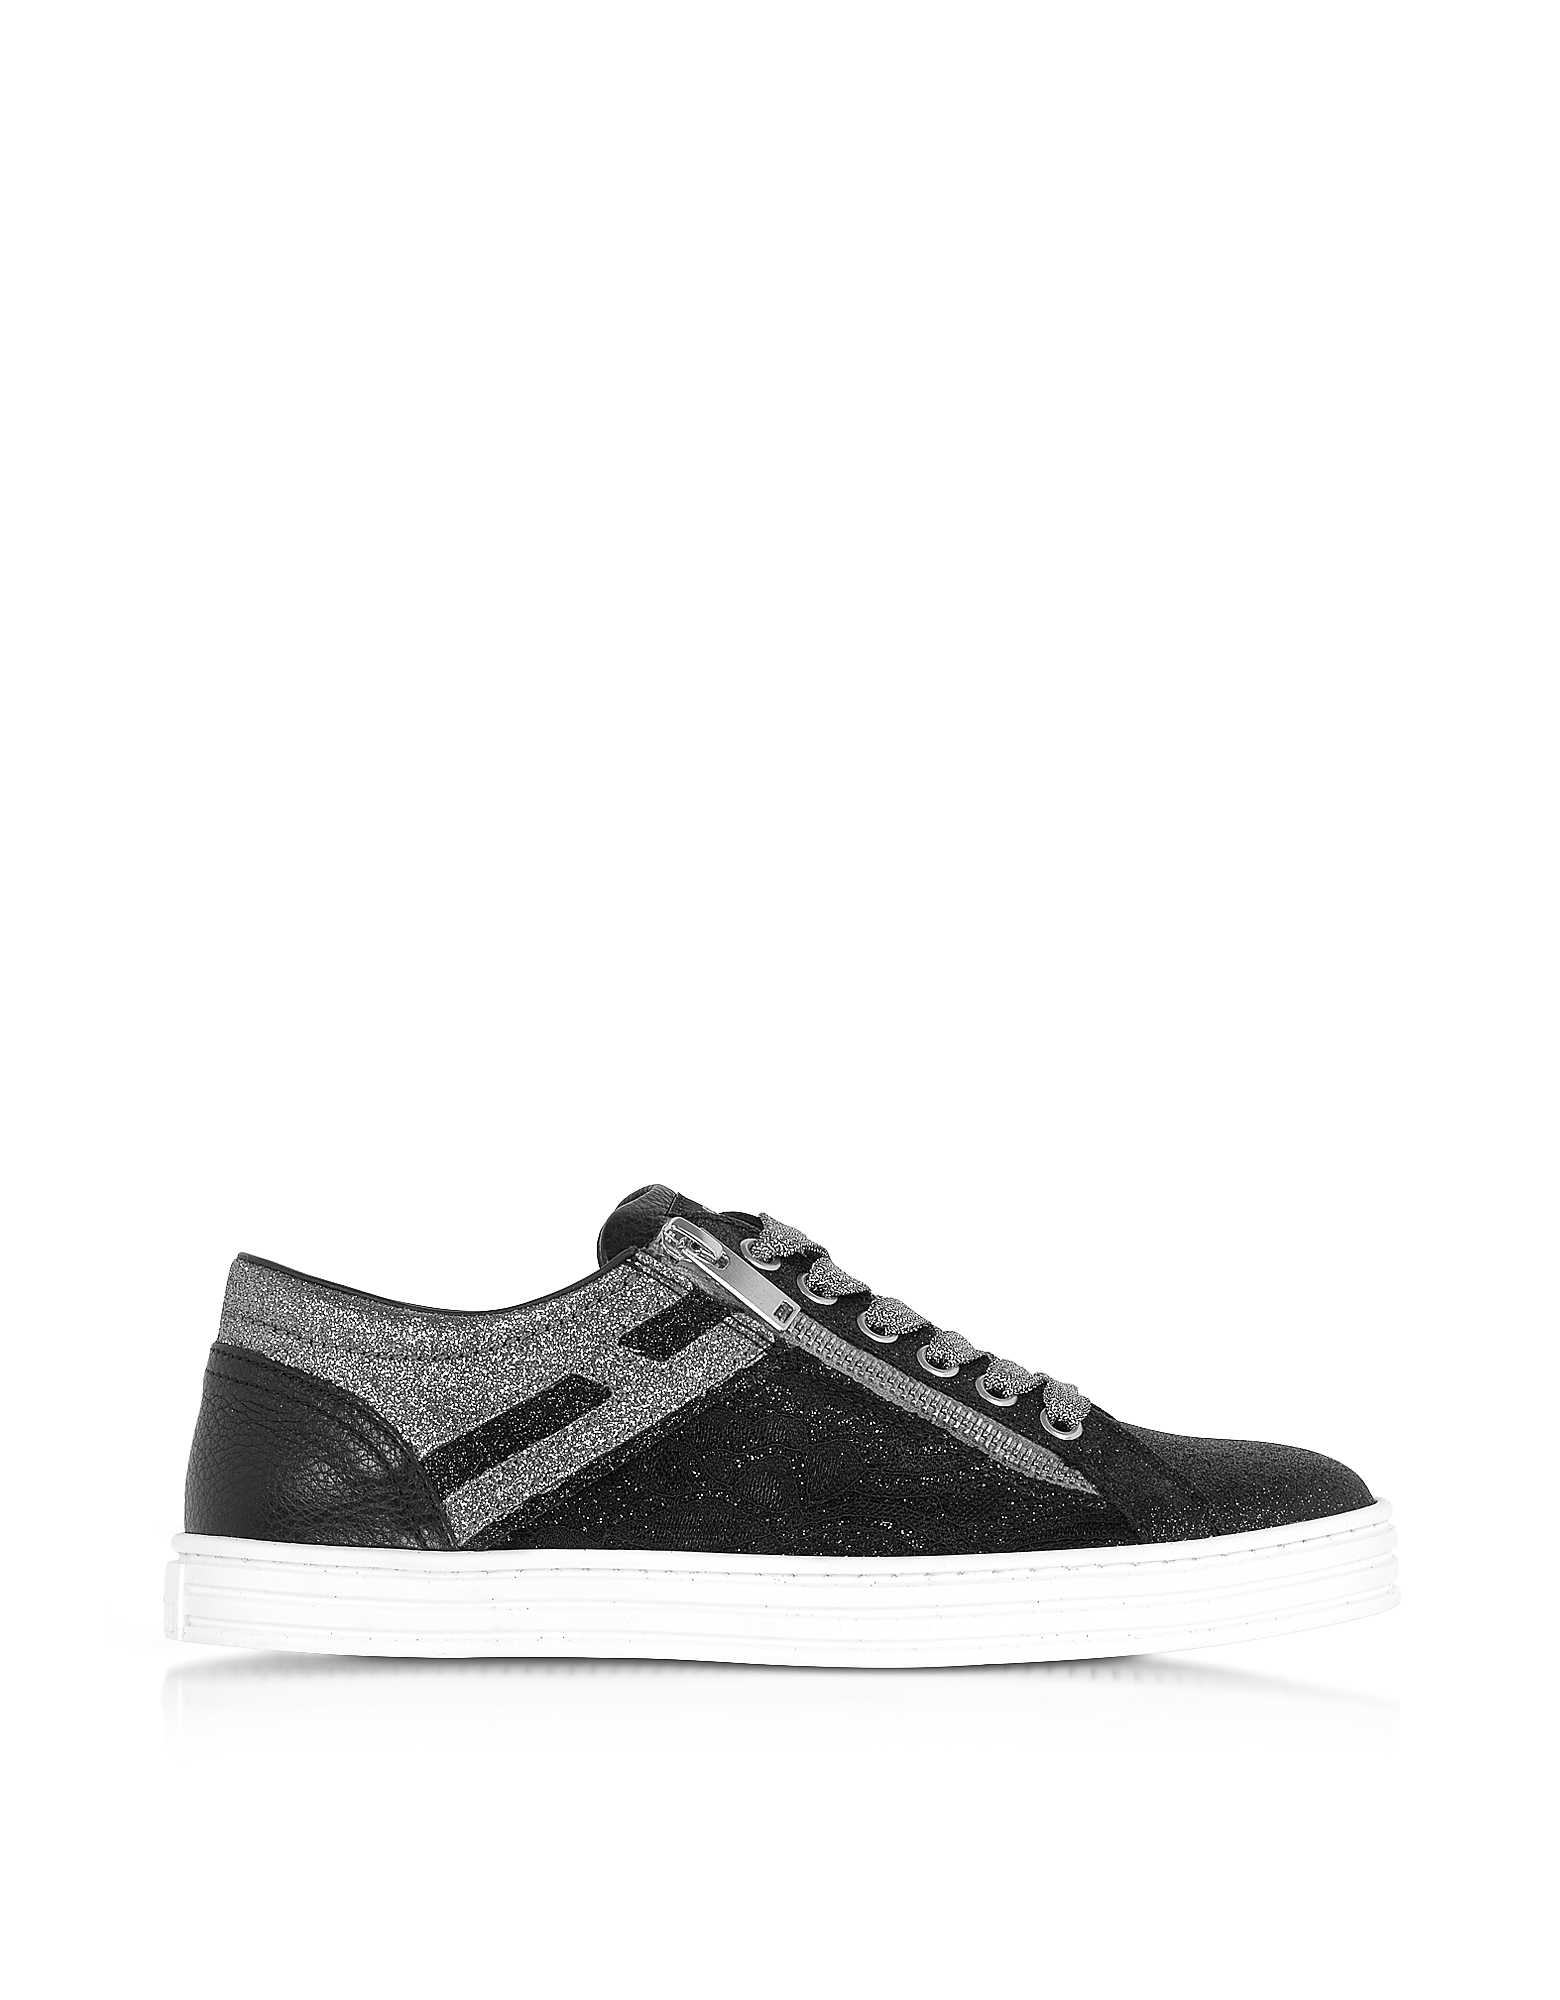 Hogan Shoes, Black and Silver Glittered Canvas Low Top Sneakers